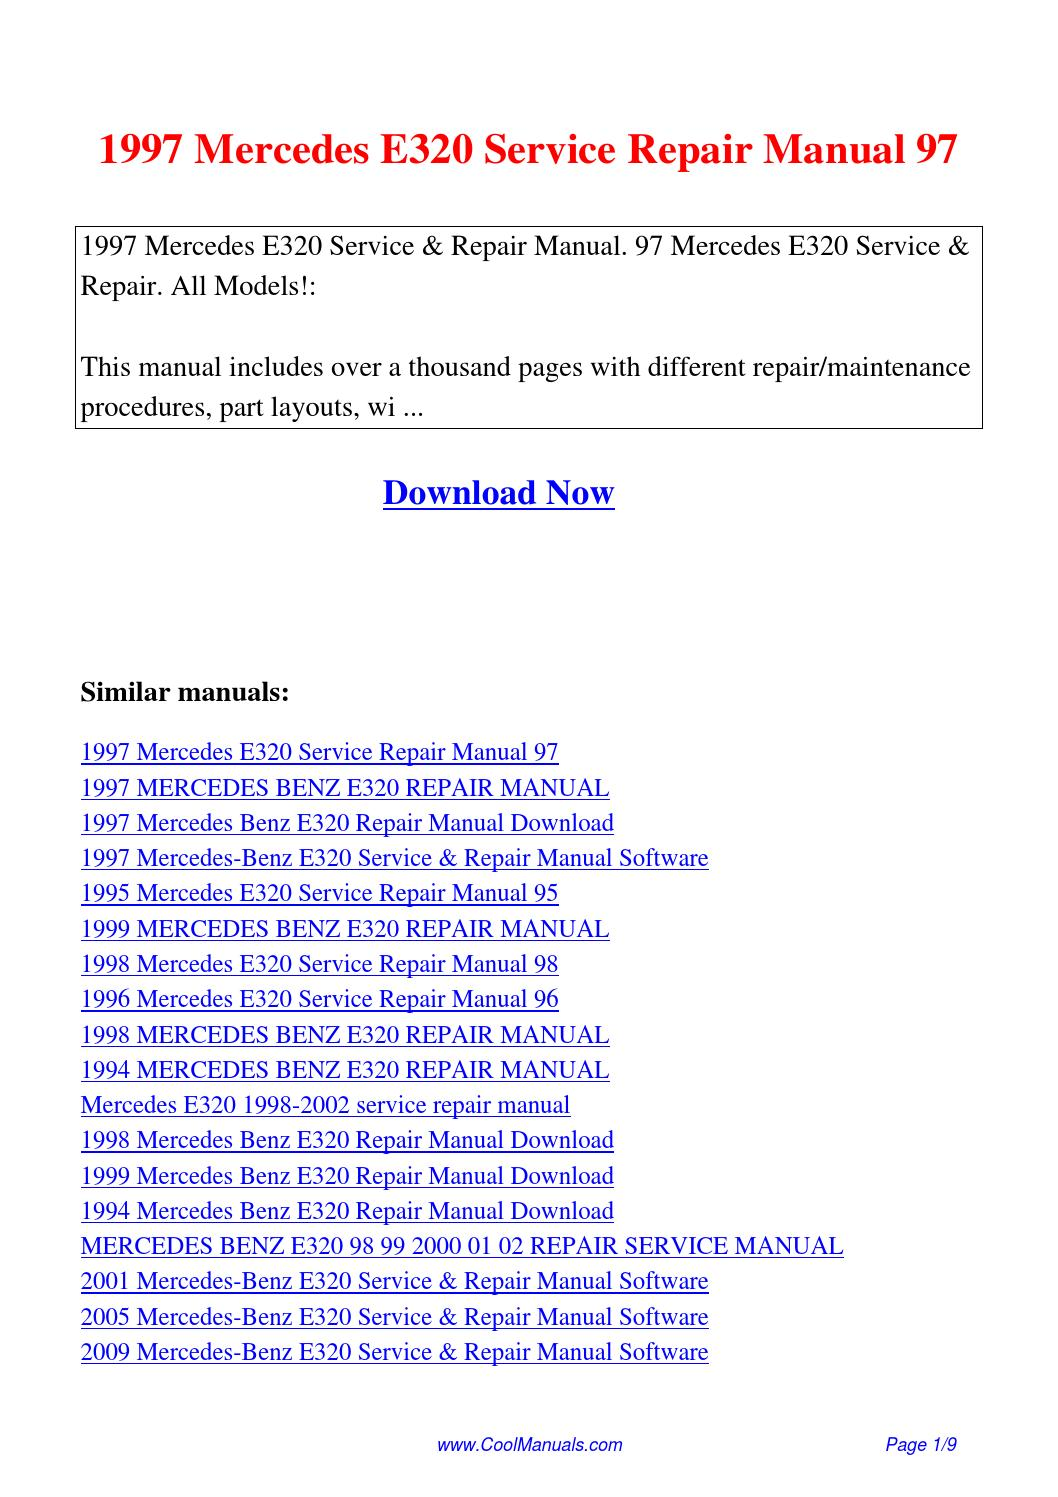 1997 Mercedes E320 Service Repair Manual 97 Pdf By Linda